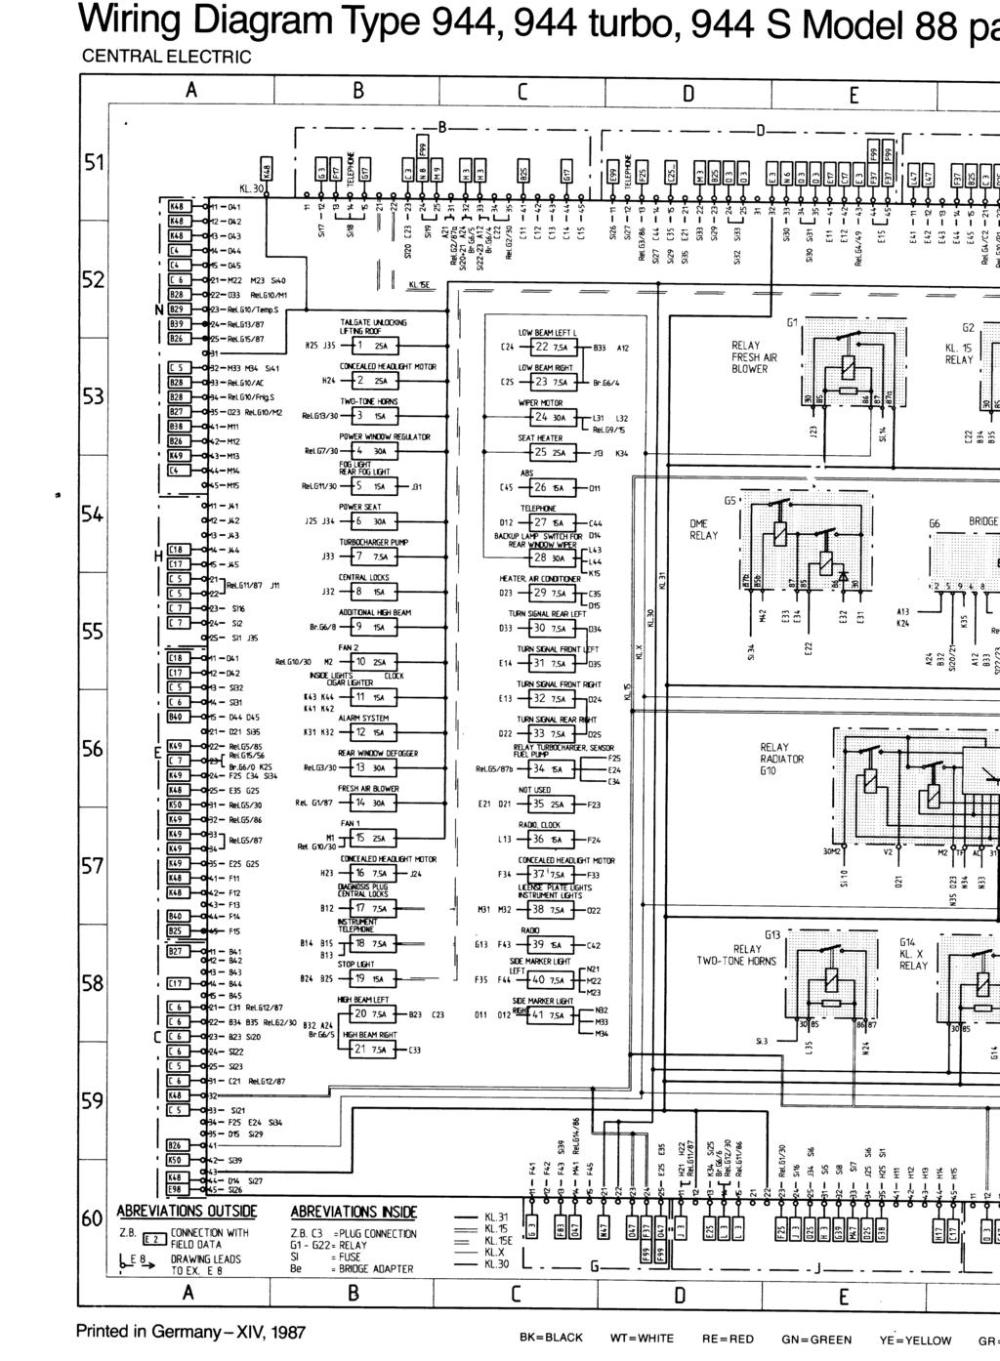 medium resolution of wiring diagram type 944 944 turbo 944 s model 88 pc central electrc a